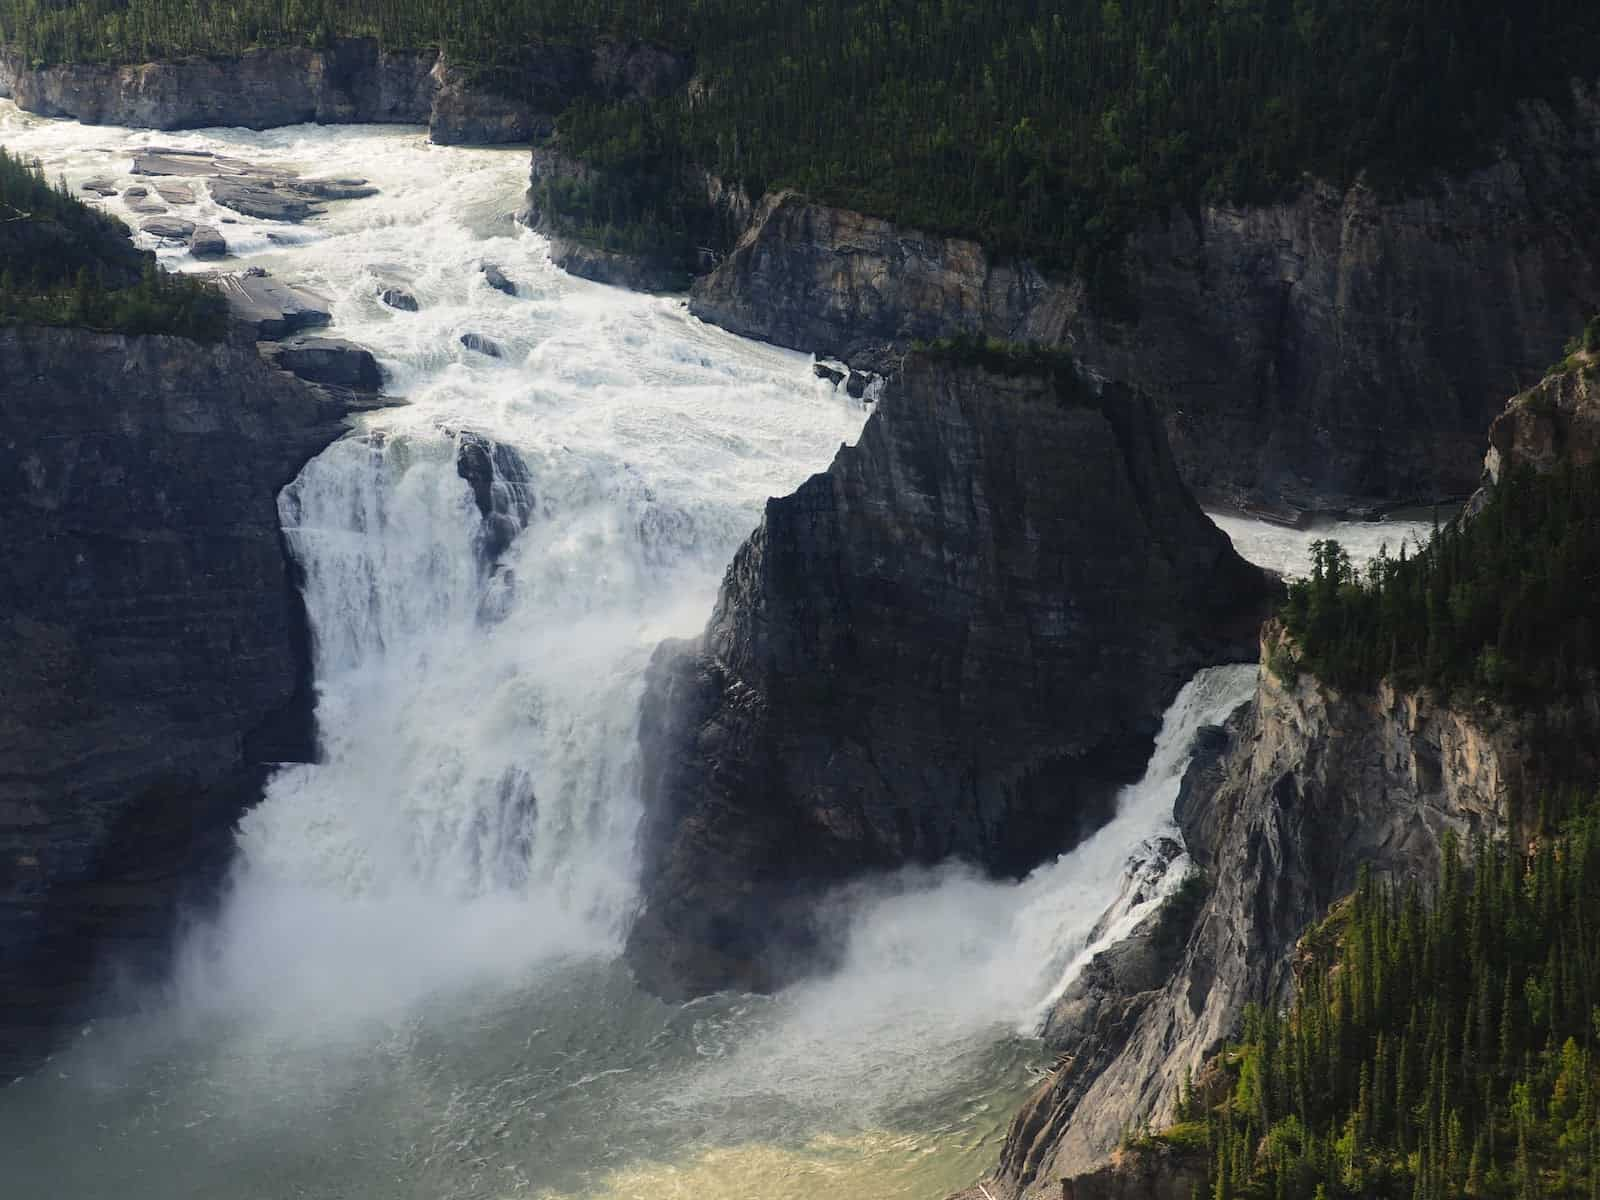 Nahanni River by Canoe: The tallest waterfall in North America